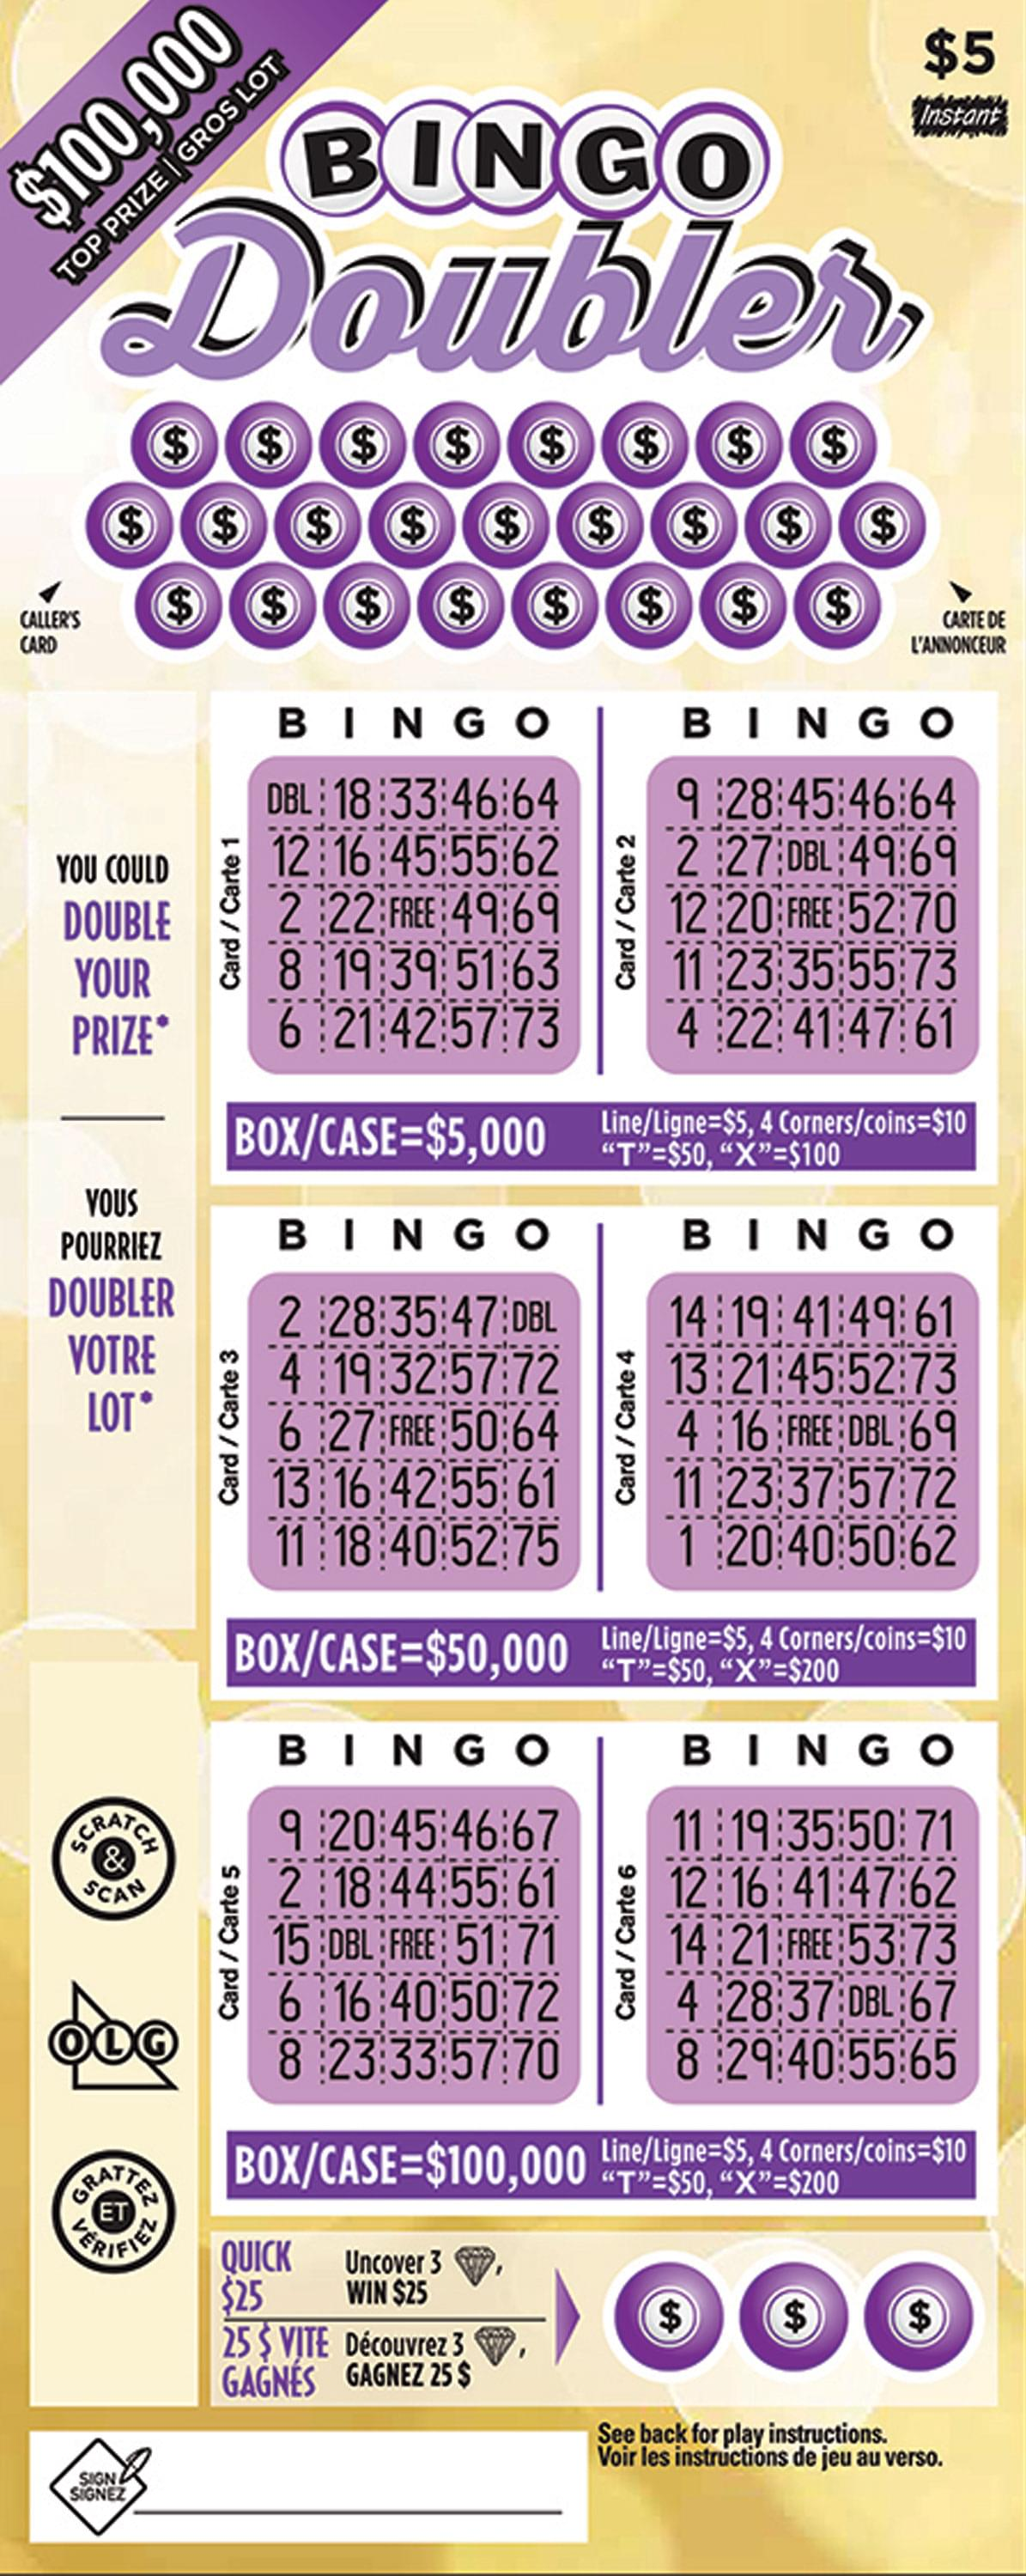 Bingo Doubler 1851 ticket